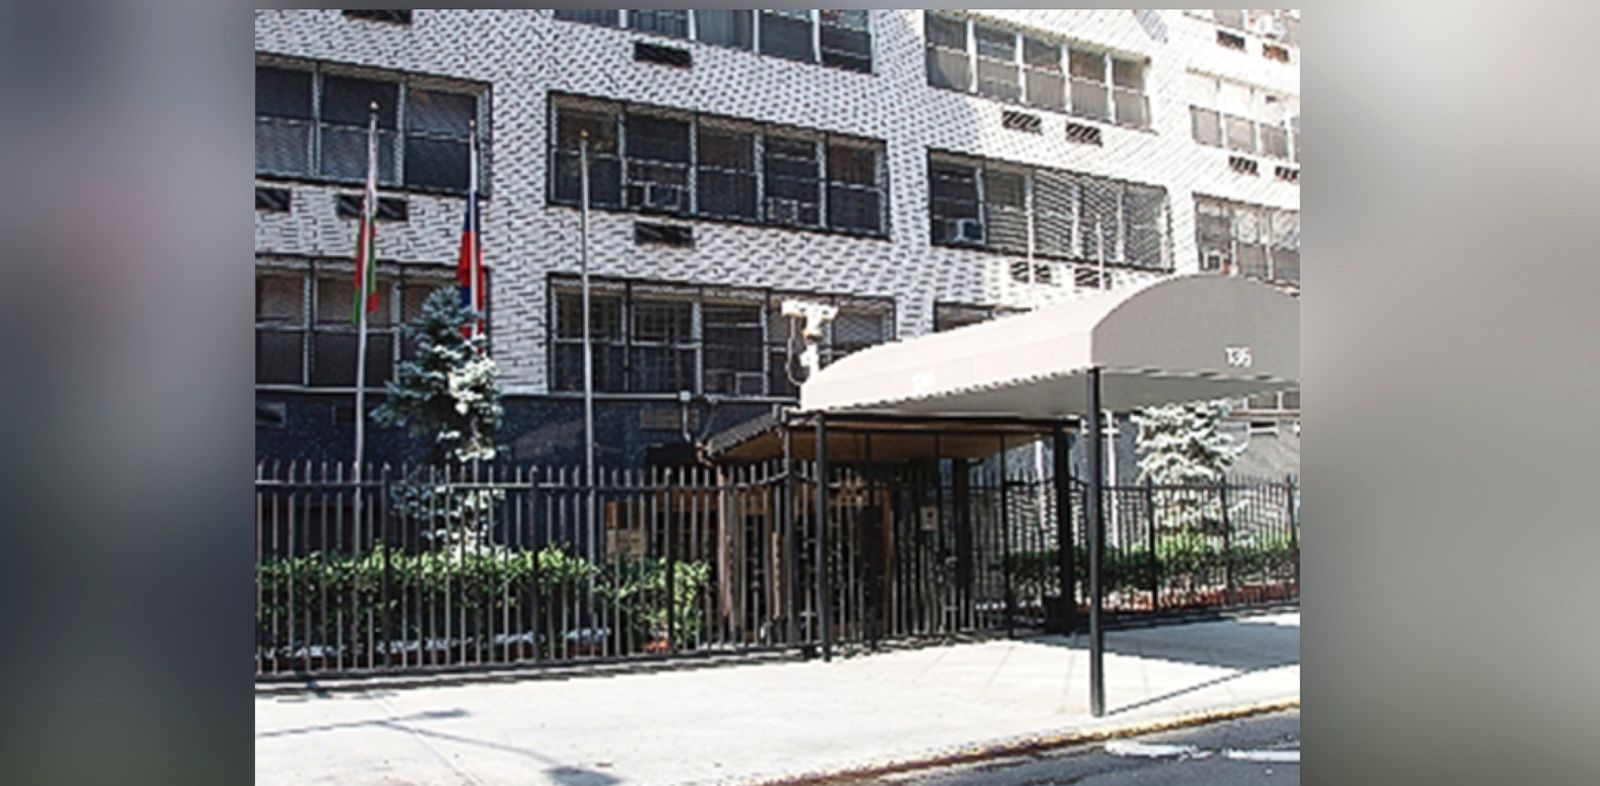 PHOTO: The Permanent Mission of the Russian Federation to the United Nations in New York.